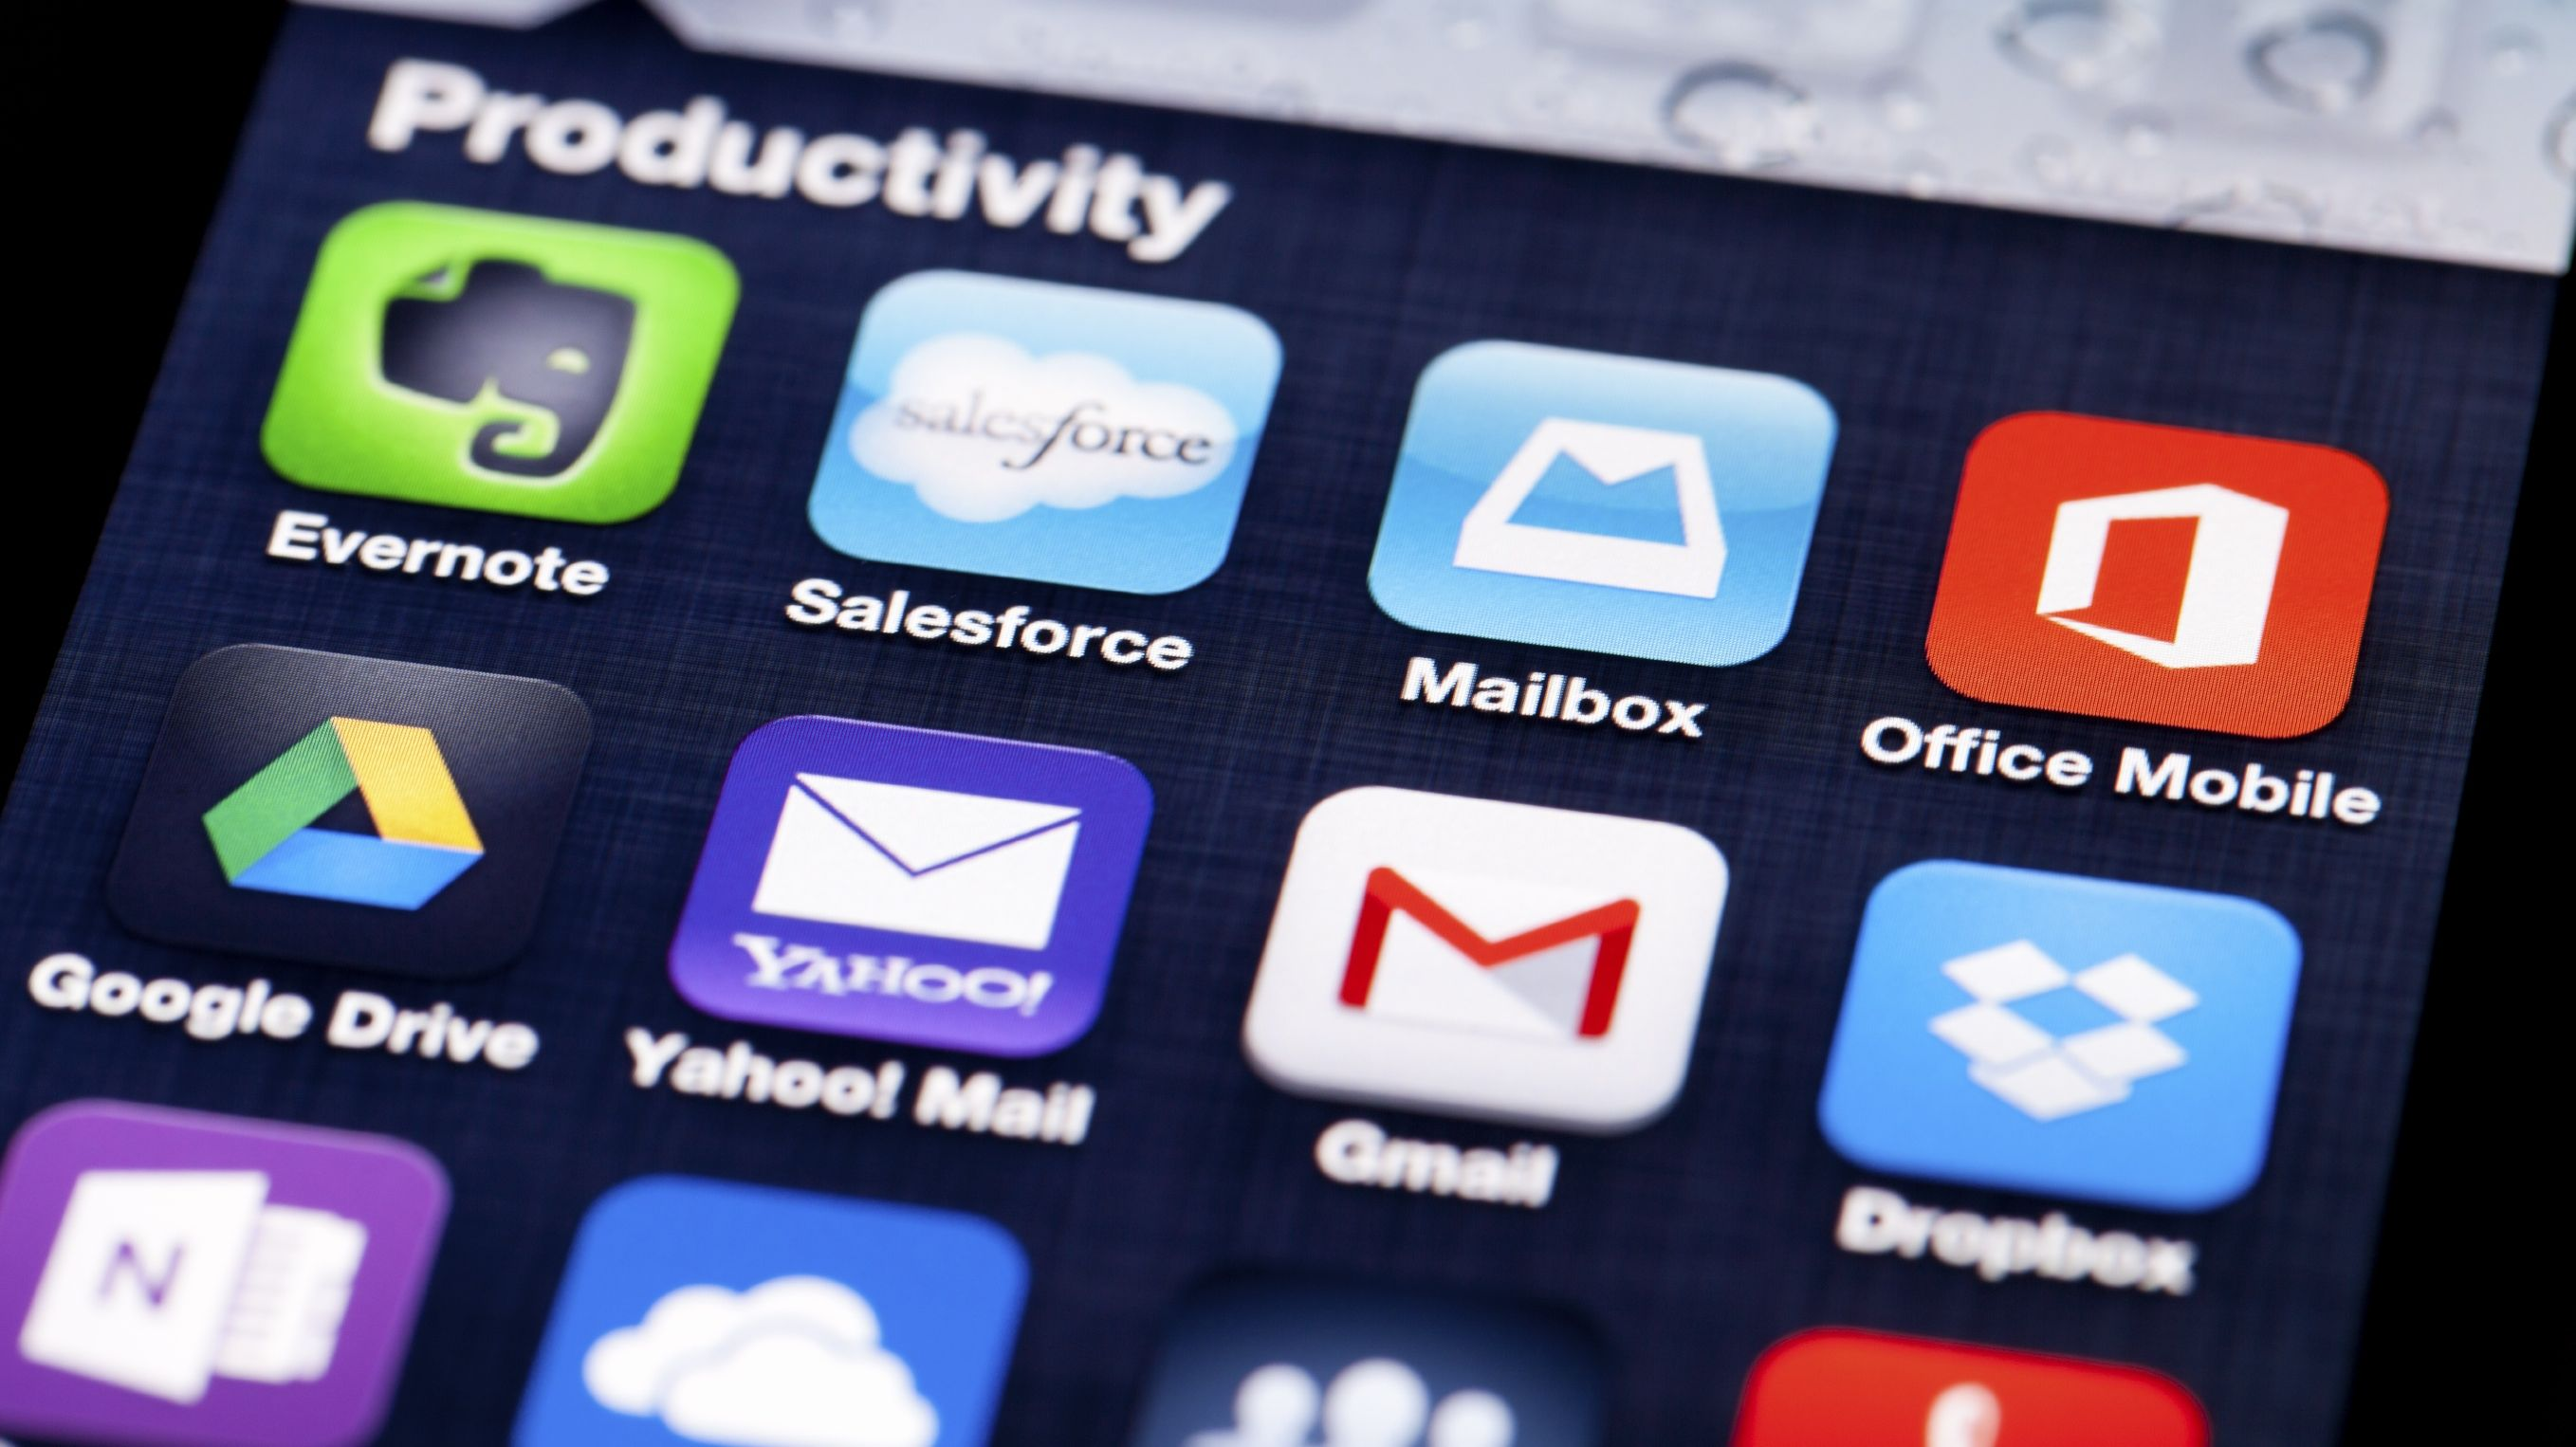 Productivity apps hosted voip business phone system provider-1.jpg